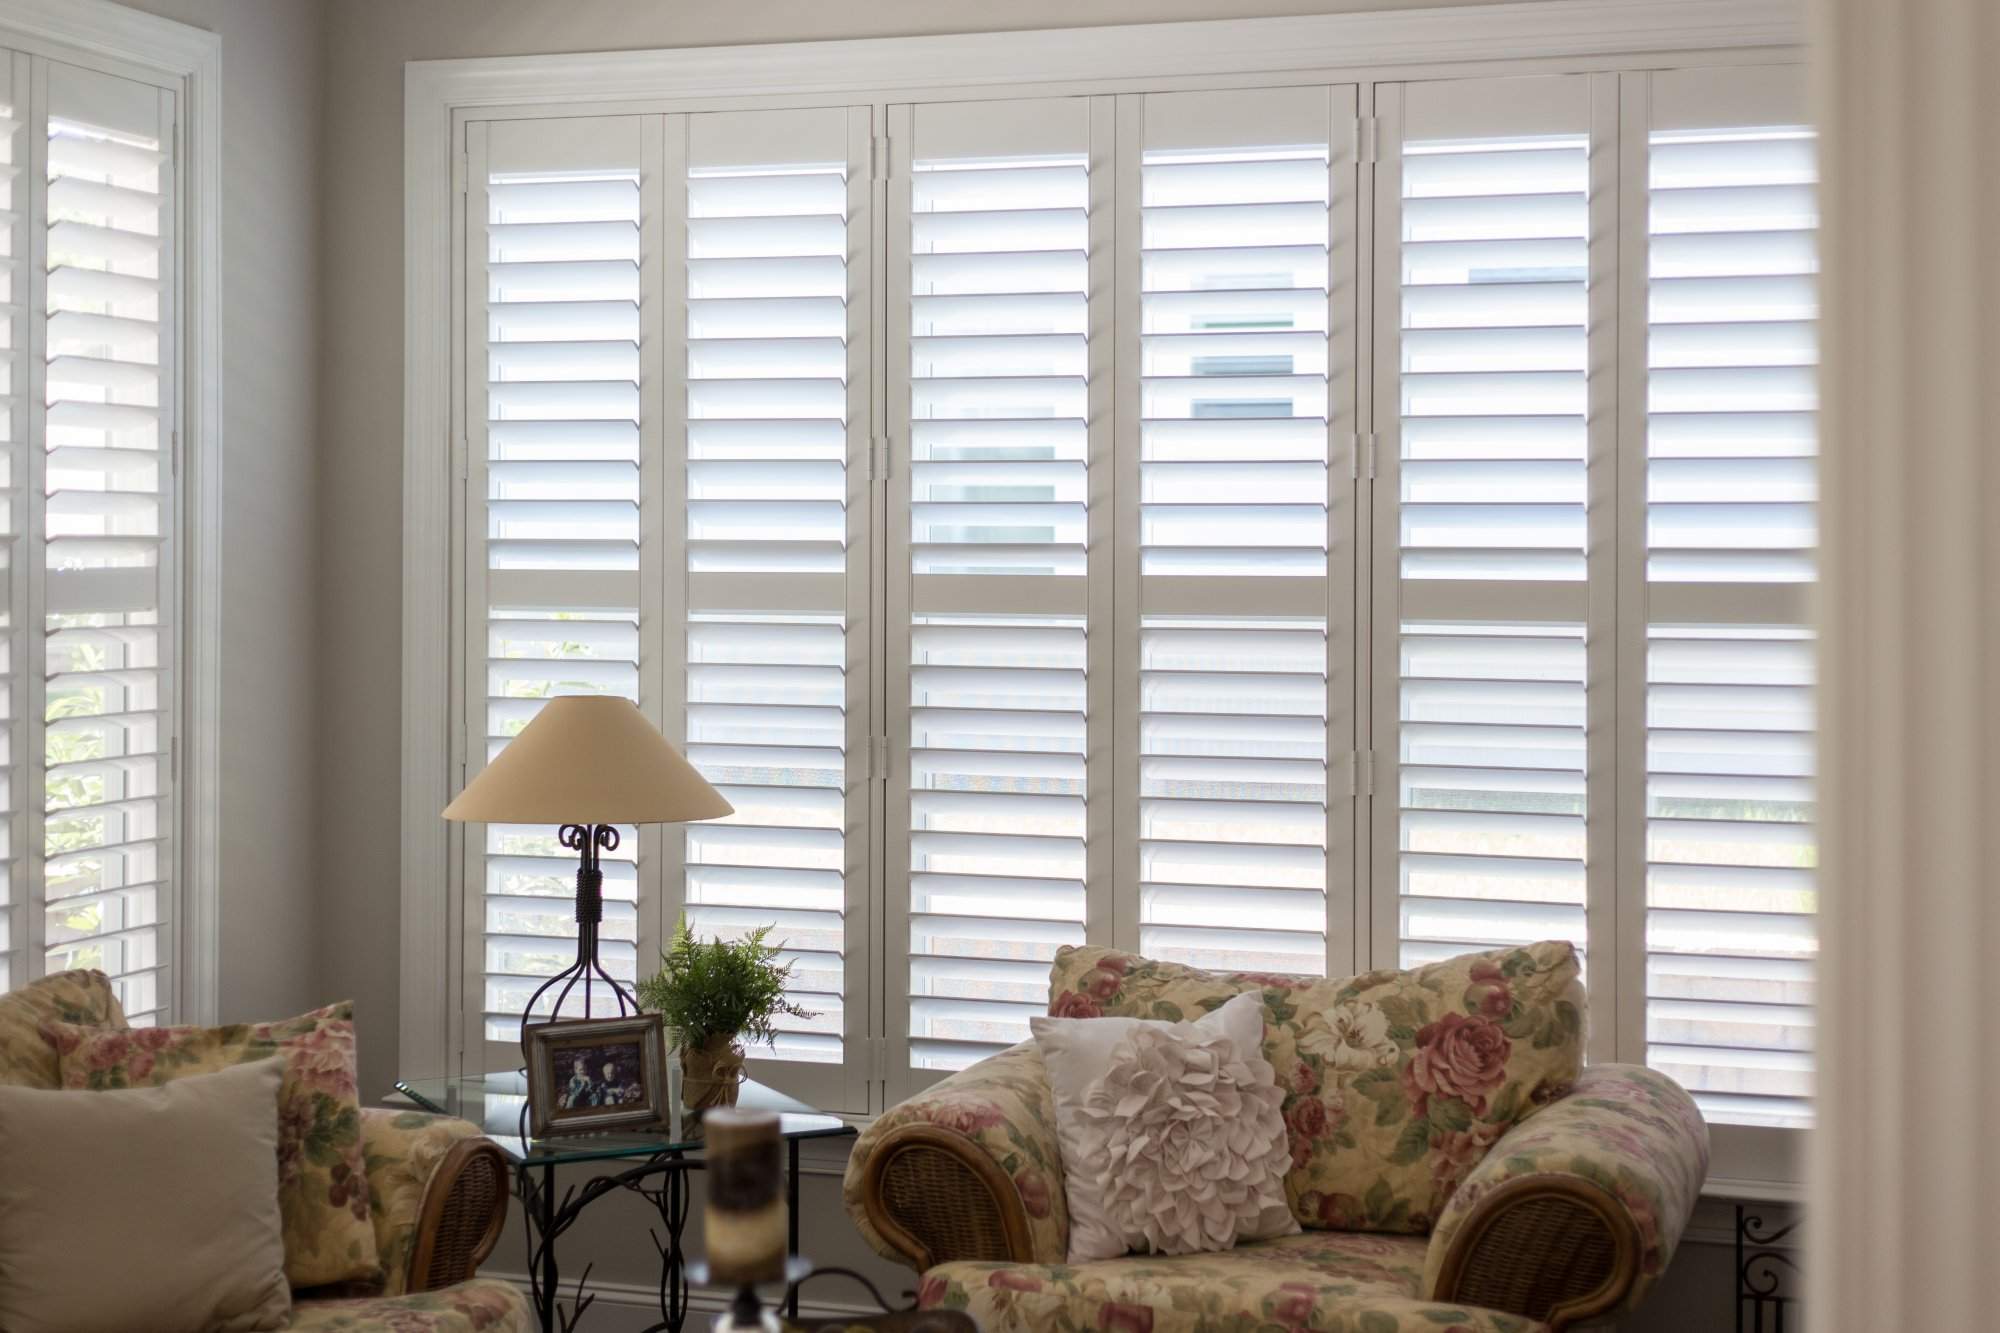 at sunburst shutters, weu0027re here to provide you with quality window PVIUCTN